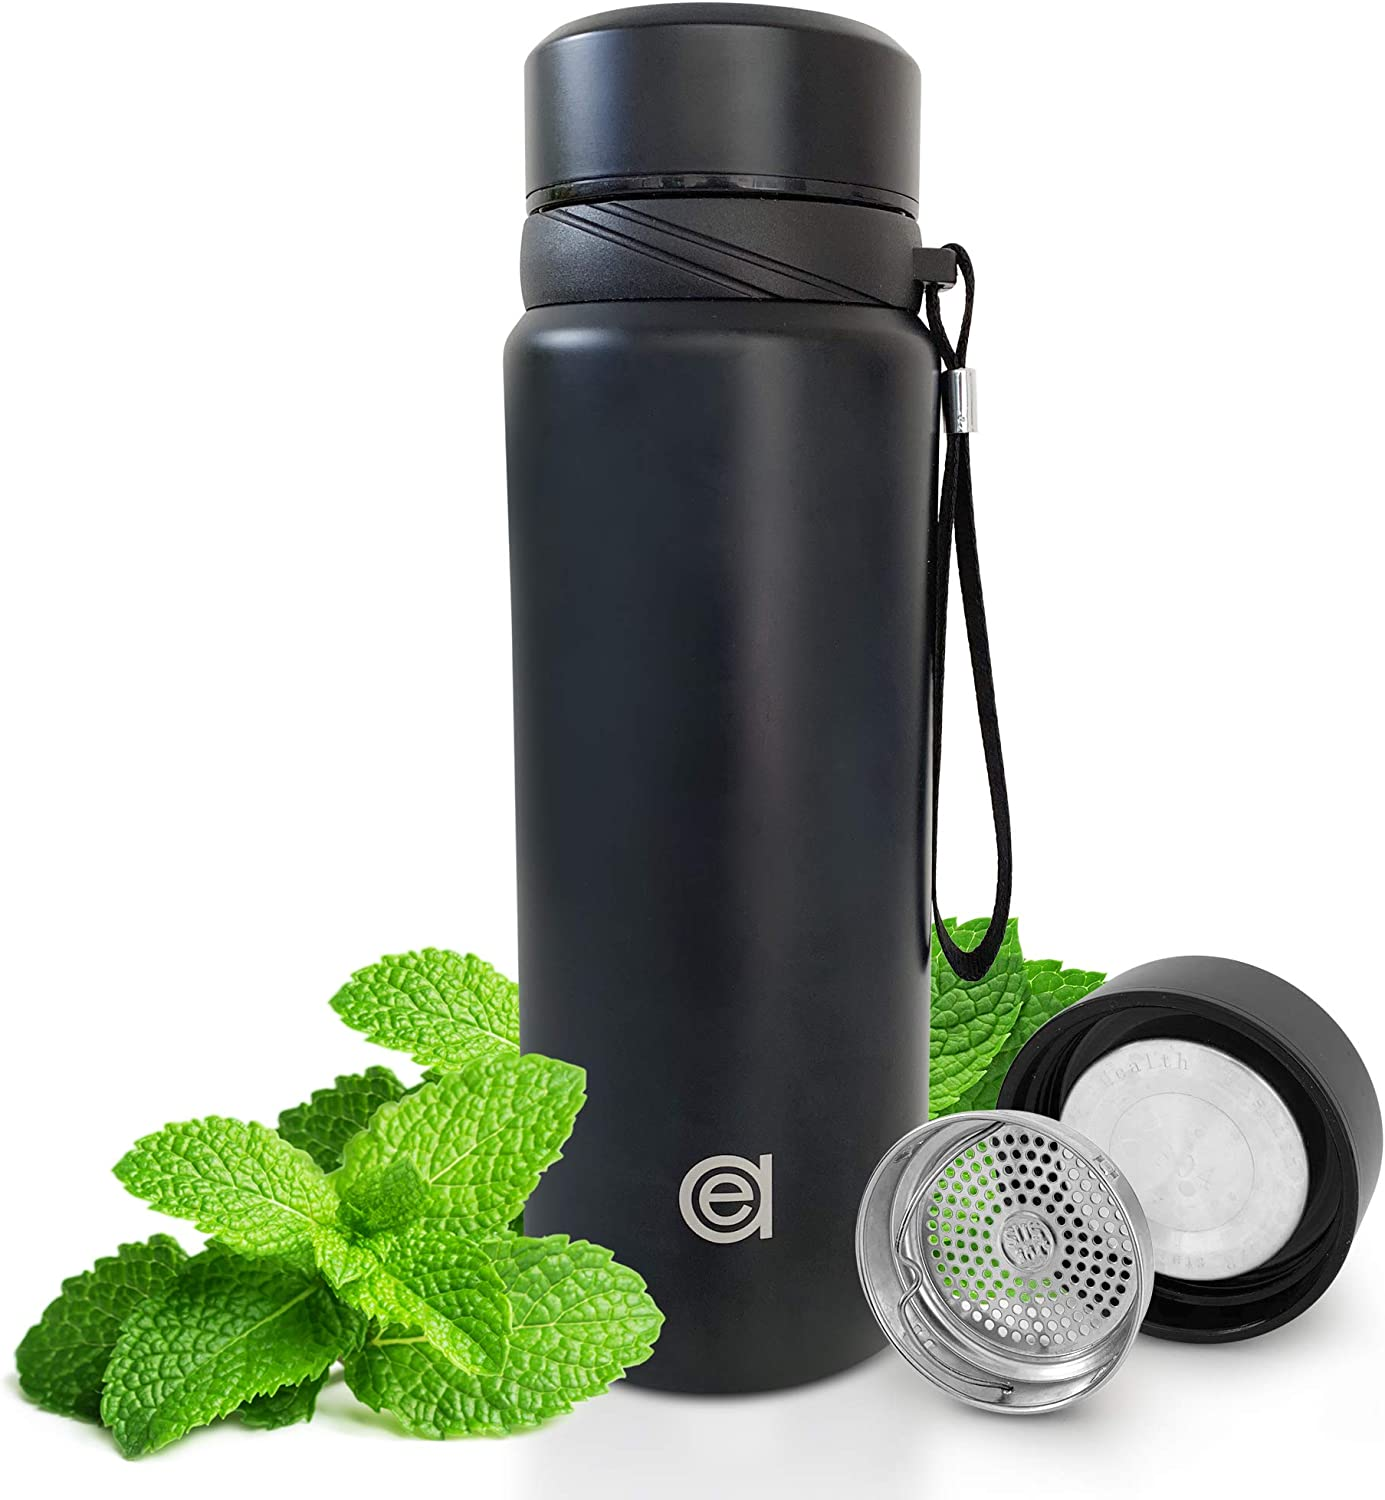 EasyAs Stainless Steel Insulated Water Bottle, Coffee Thermos, Double Walled Vacuum Flask Ideal for Hot and Cold Beverages and Food When You Travel 26oz Black